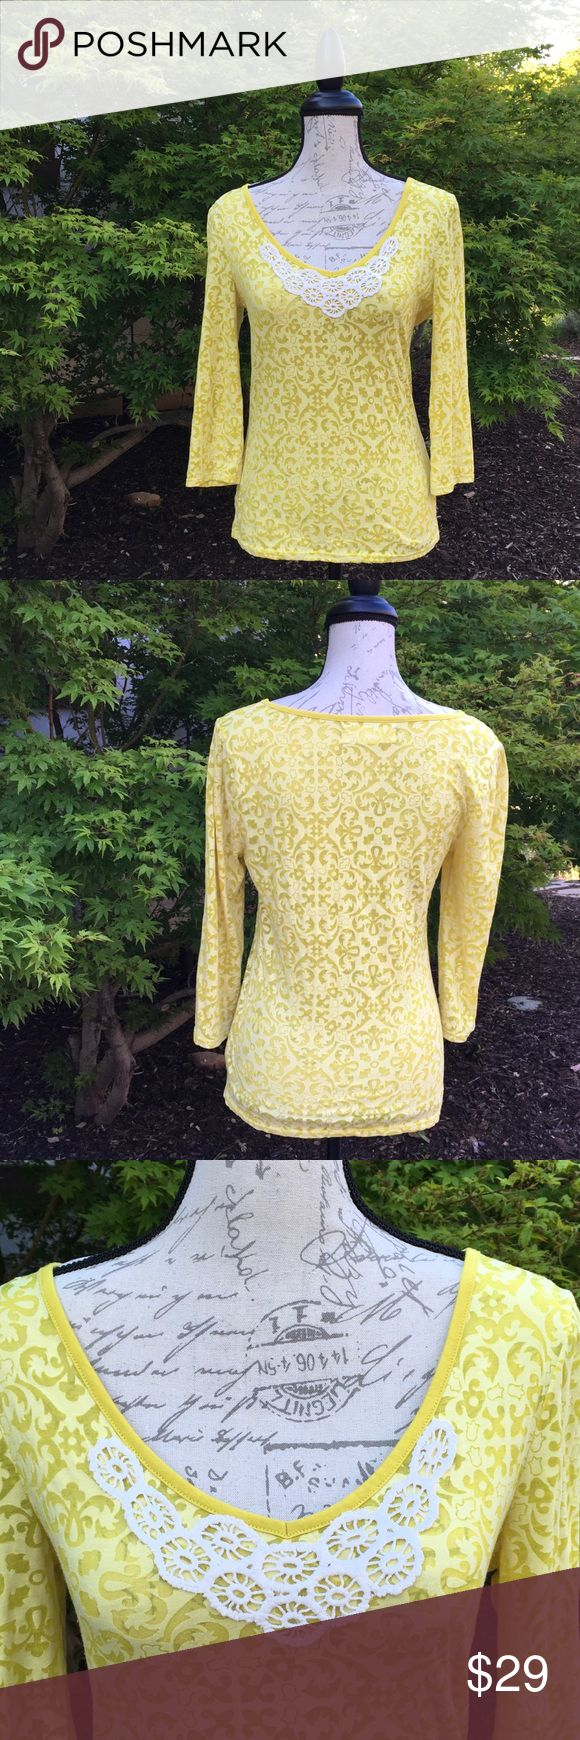 Beautifully accented Anthropologie top Lovely spring or summer top with deep V-neck and unique and beautiful sheer accents in the material. Beautiful yellow/chartreuse color. In excellent used condition without defects or flaws. Smoke free and (sadly) pet free home. Lilka Tops